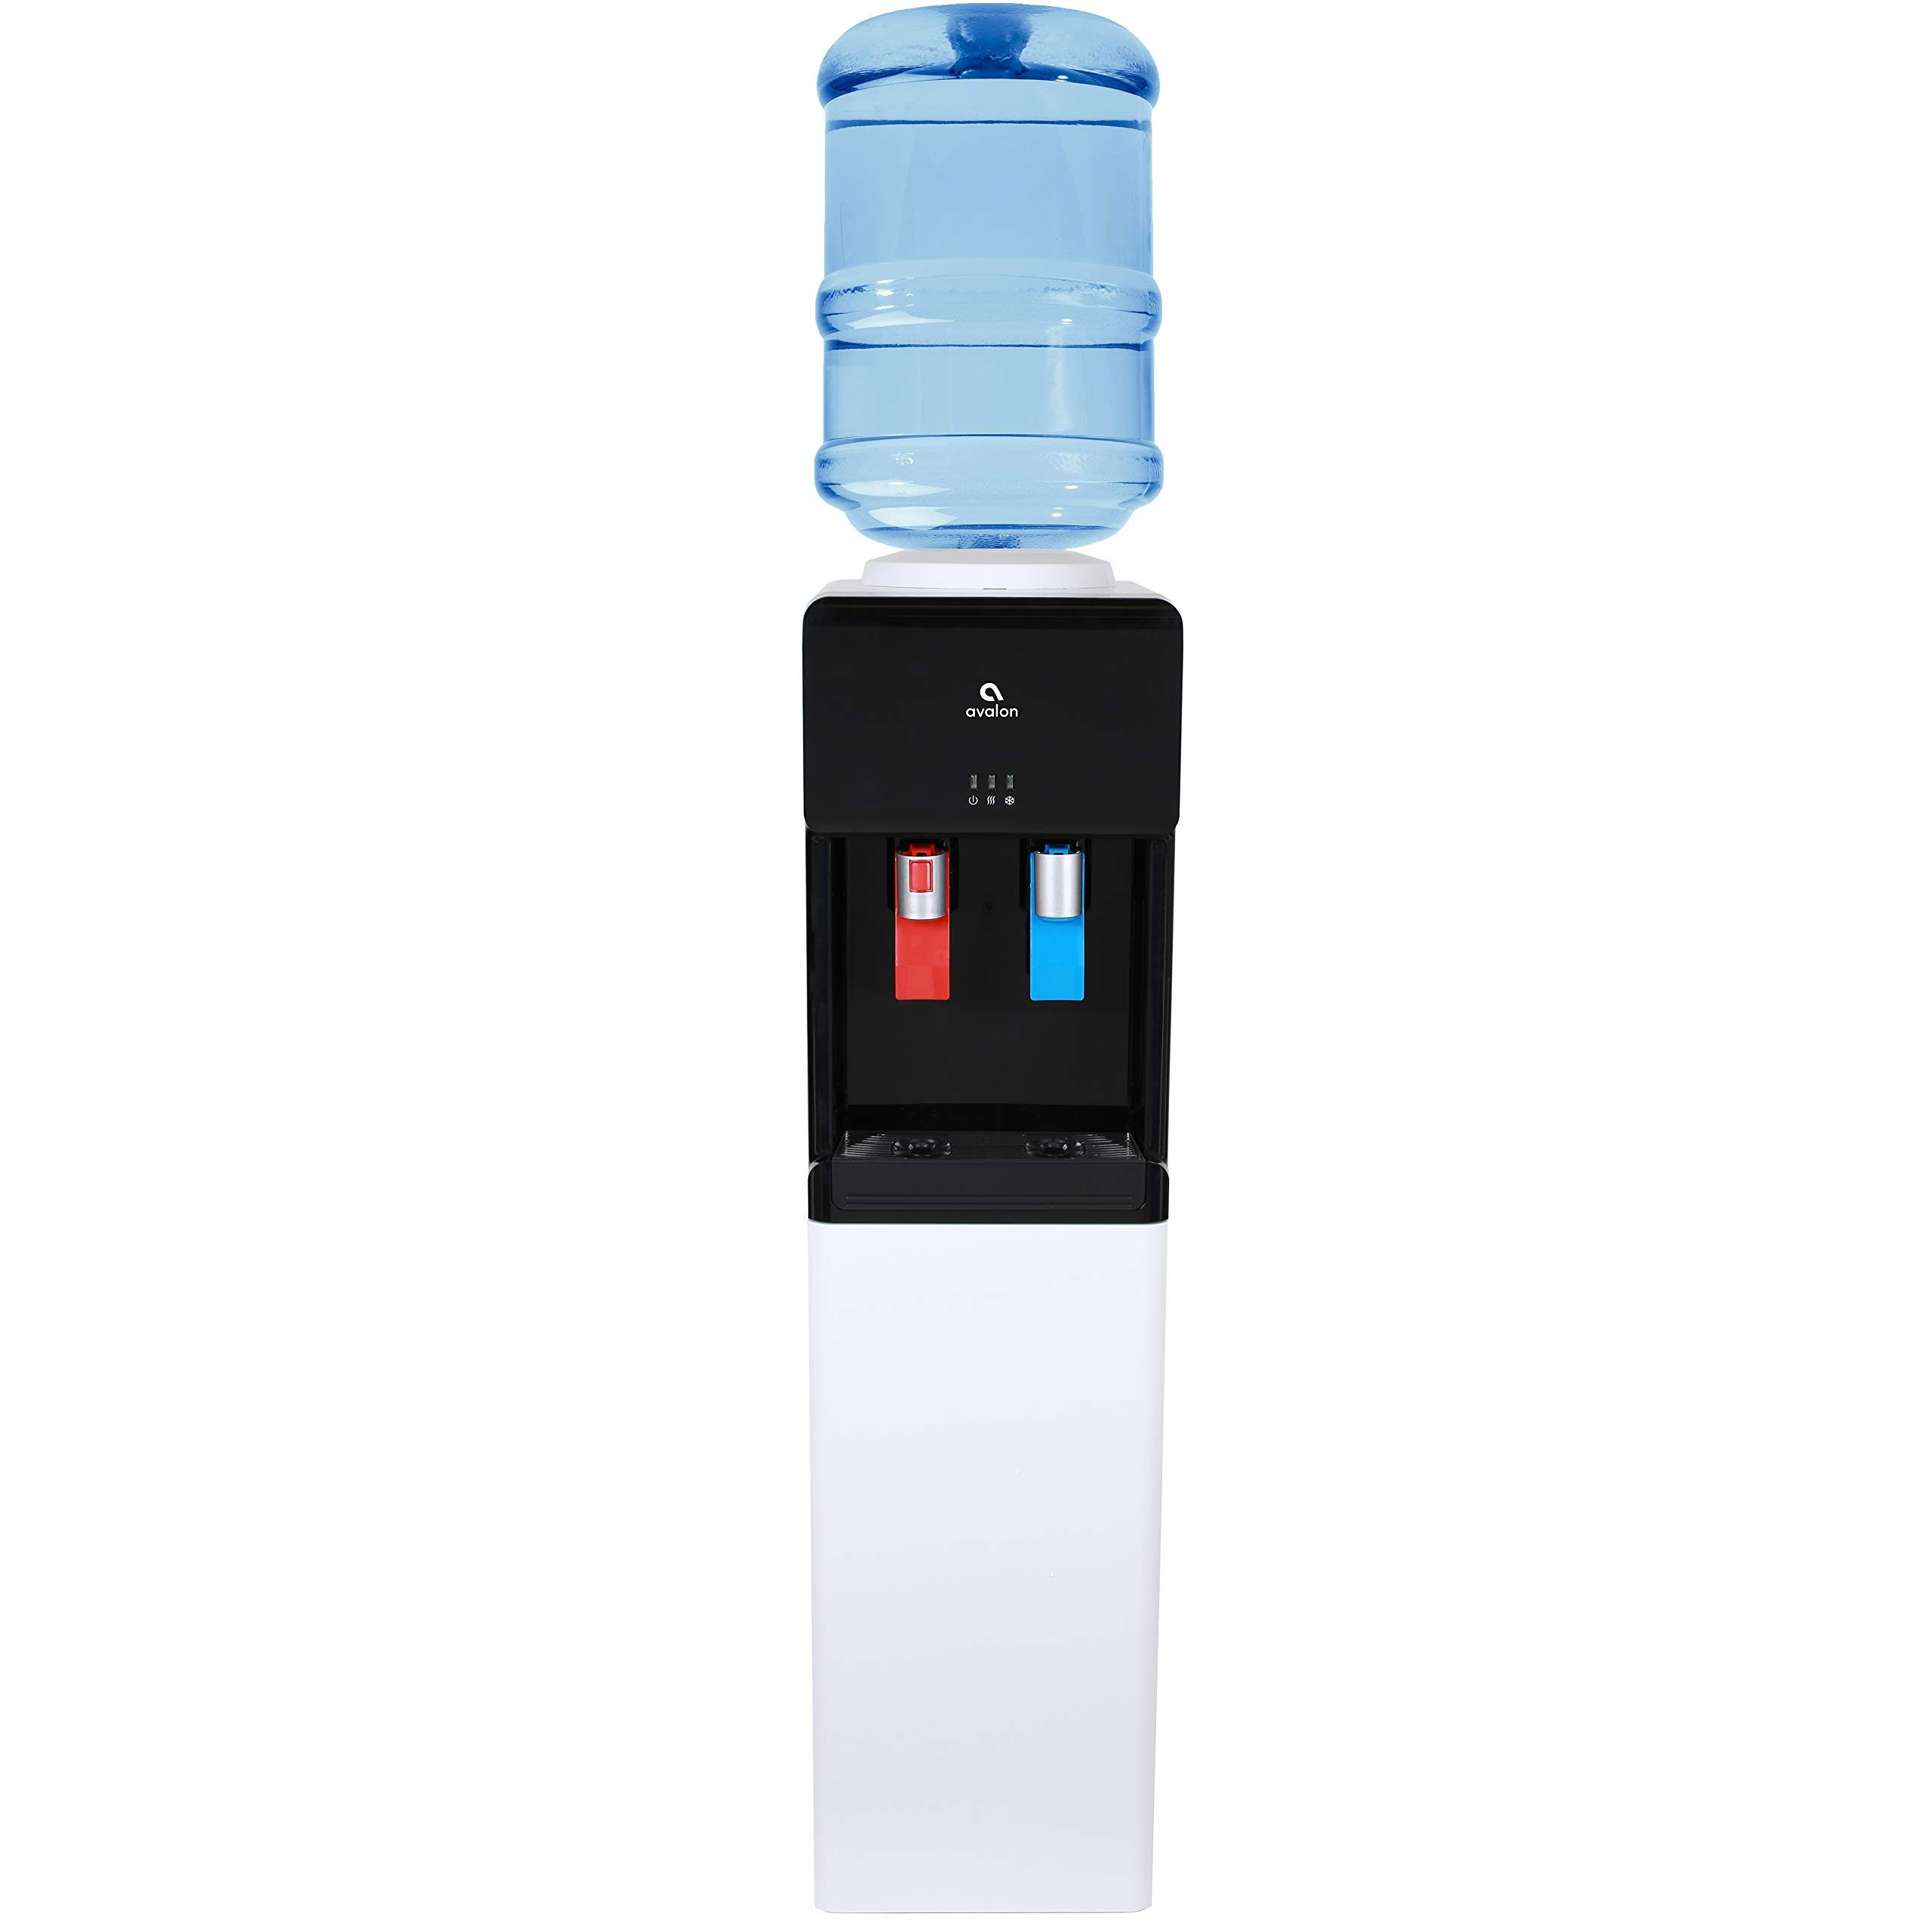 Avalon Top Loading Water Cooler Dispenser - Hot & Cold Water, Child Safety Lock, Innovative Ultra Slim Design, Holds 3 or 5 Gallon Bottles - UL/Energy Star Approved (Renewed)